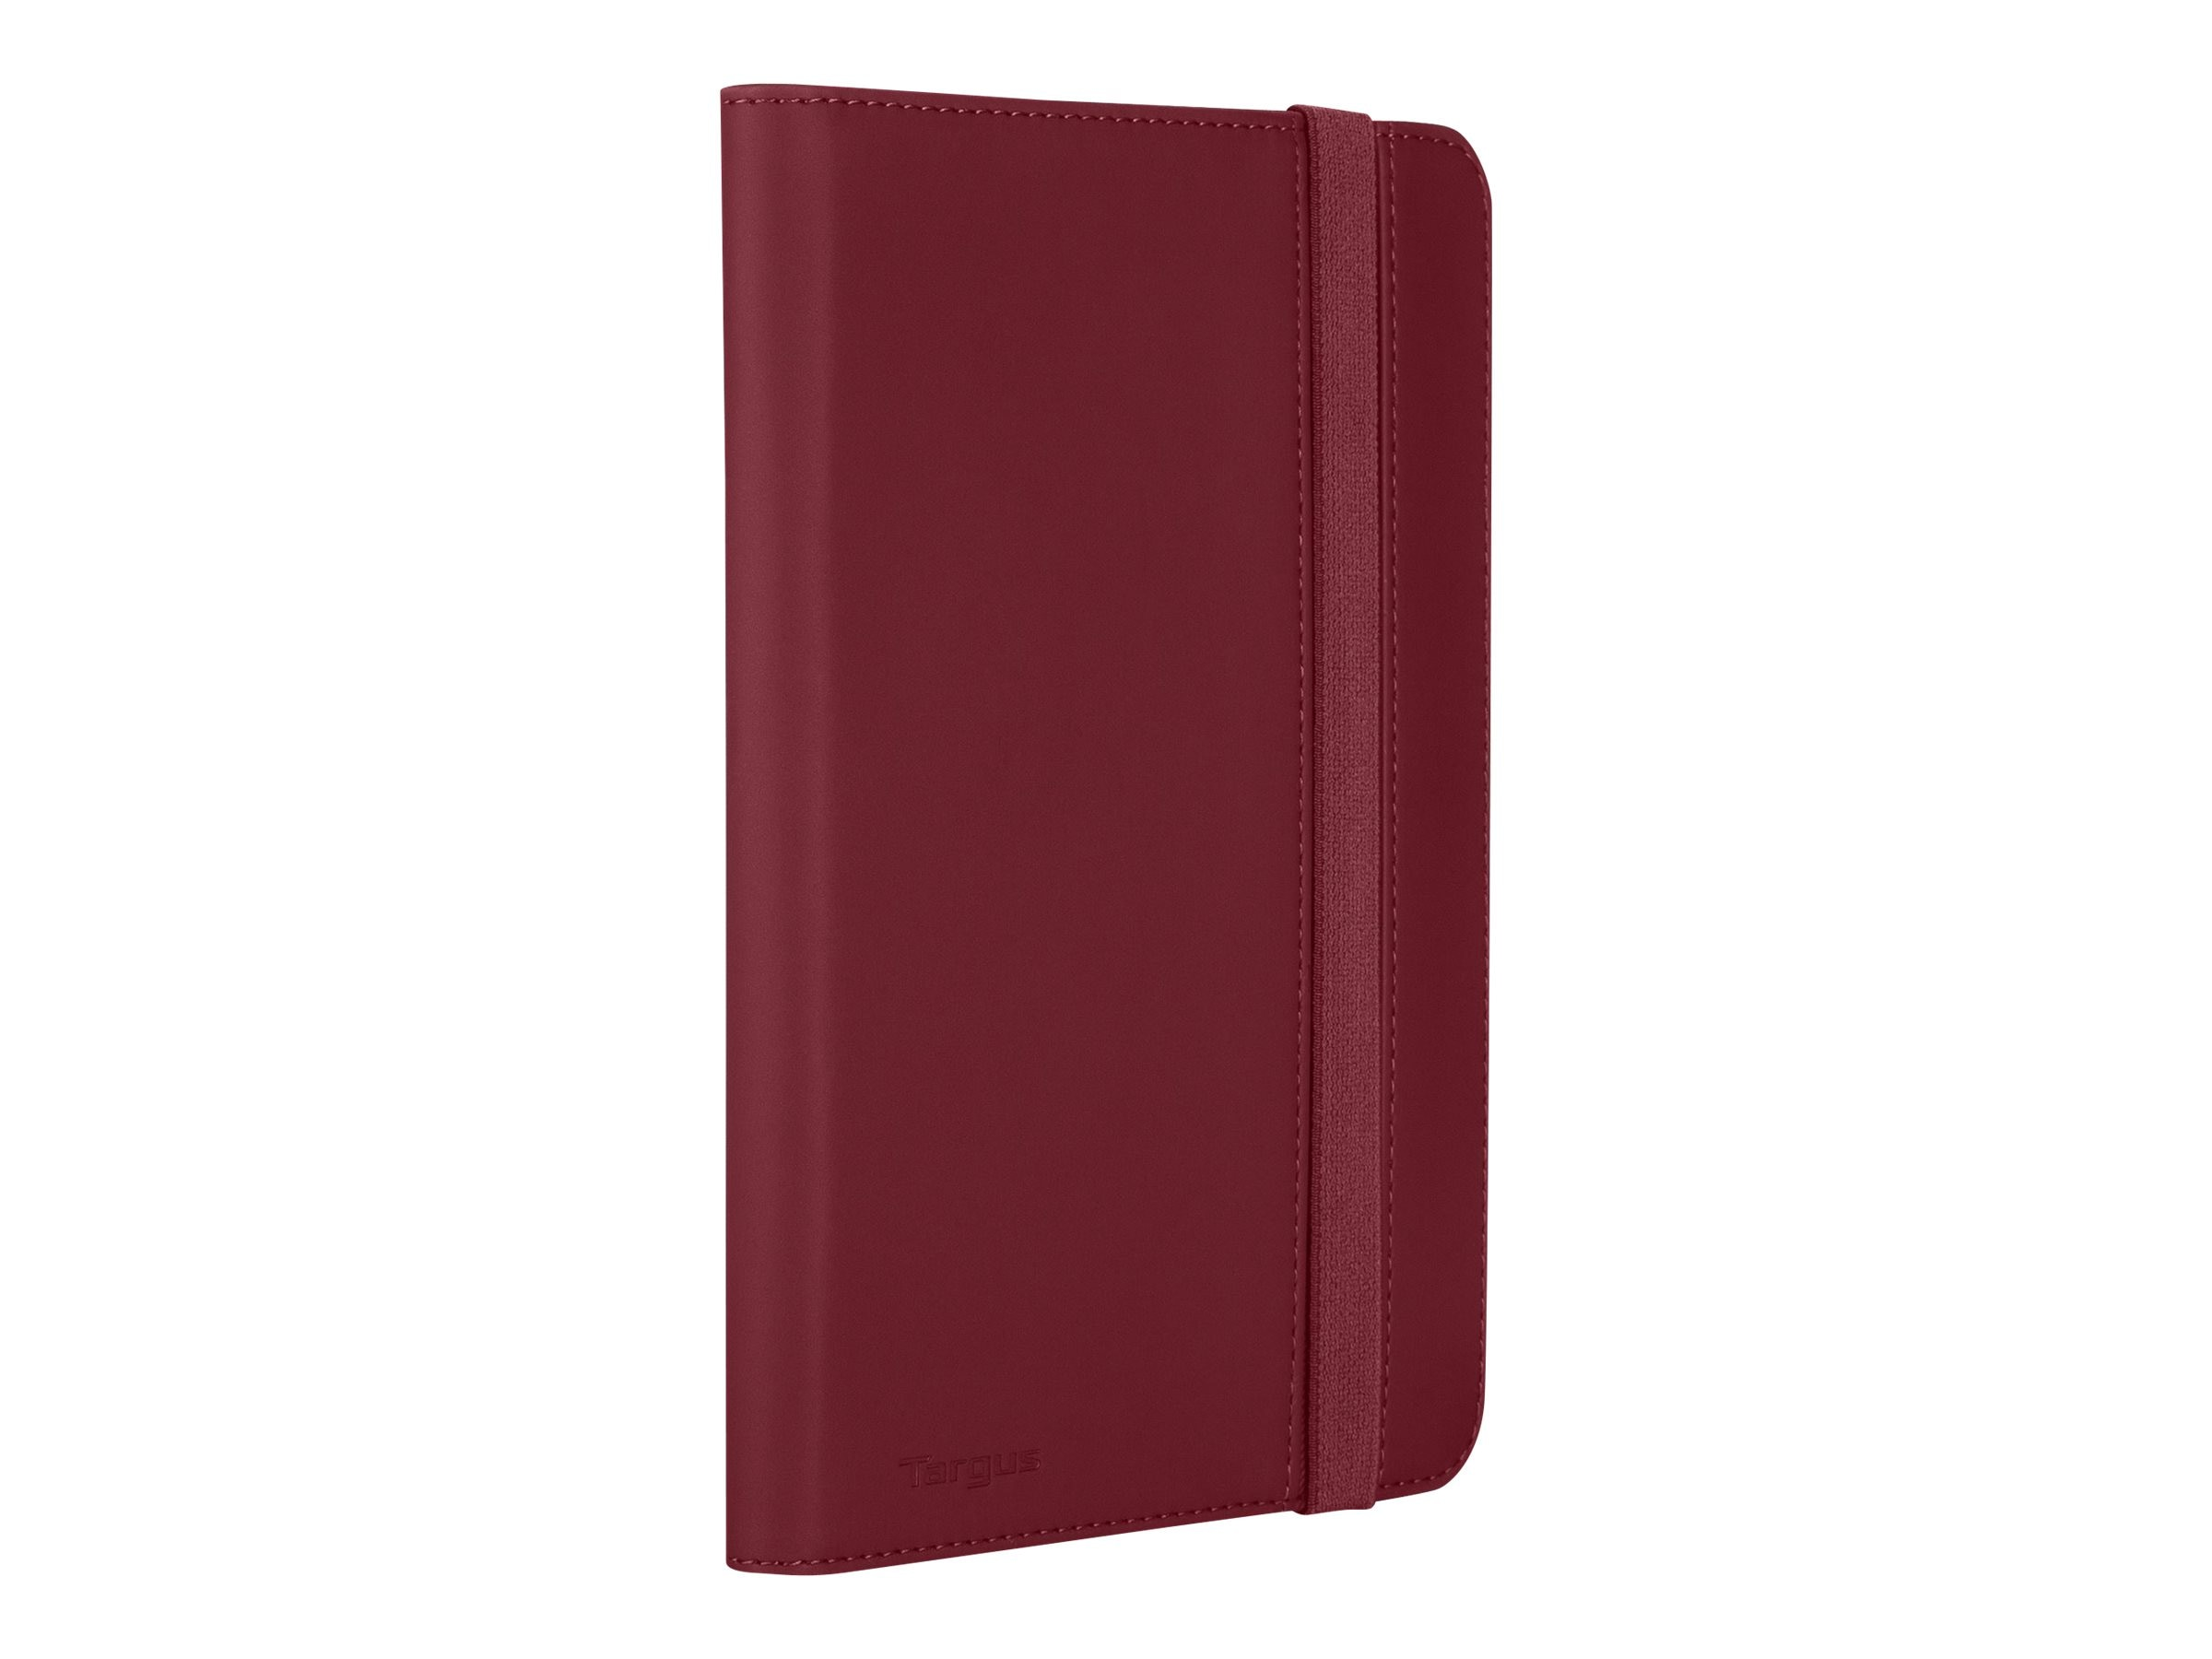 Targus Kickstand Case for Samsung Galaxy Note 8.0, Crimson Red, THZ20102US